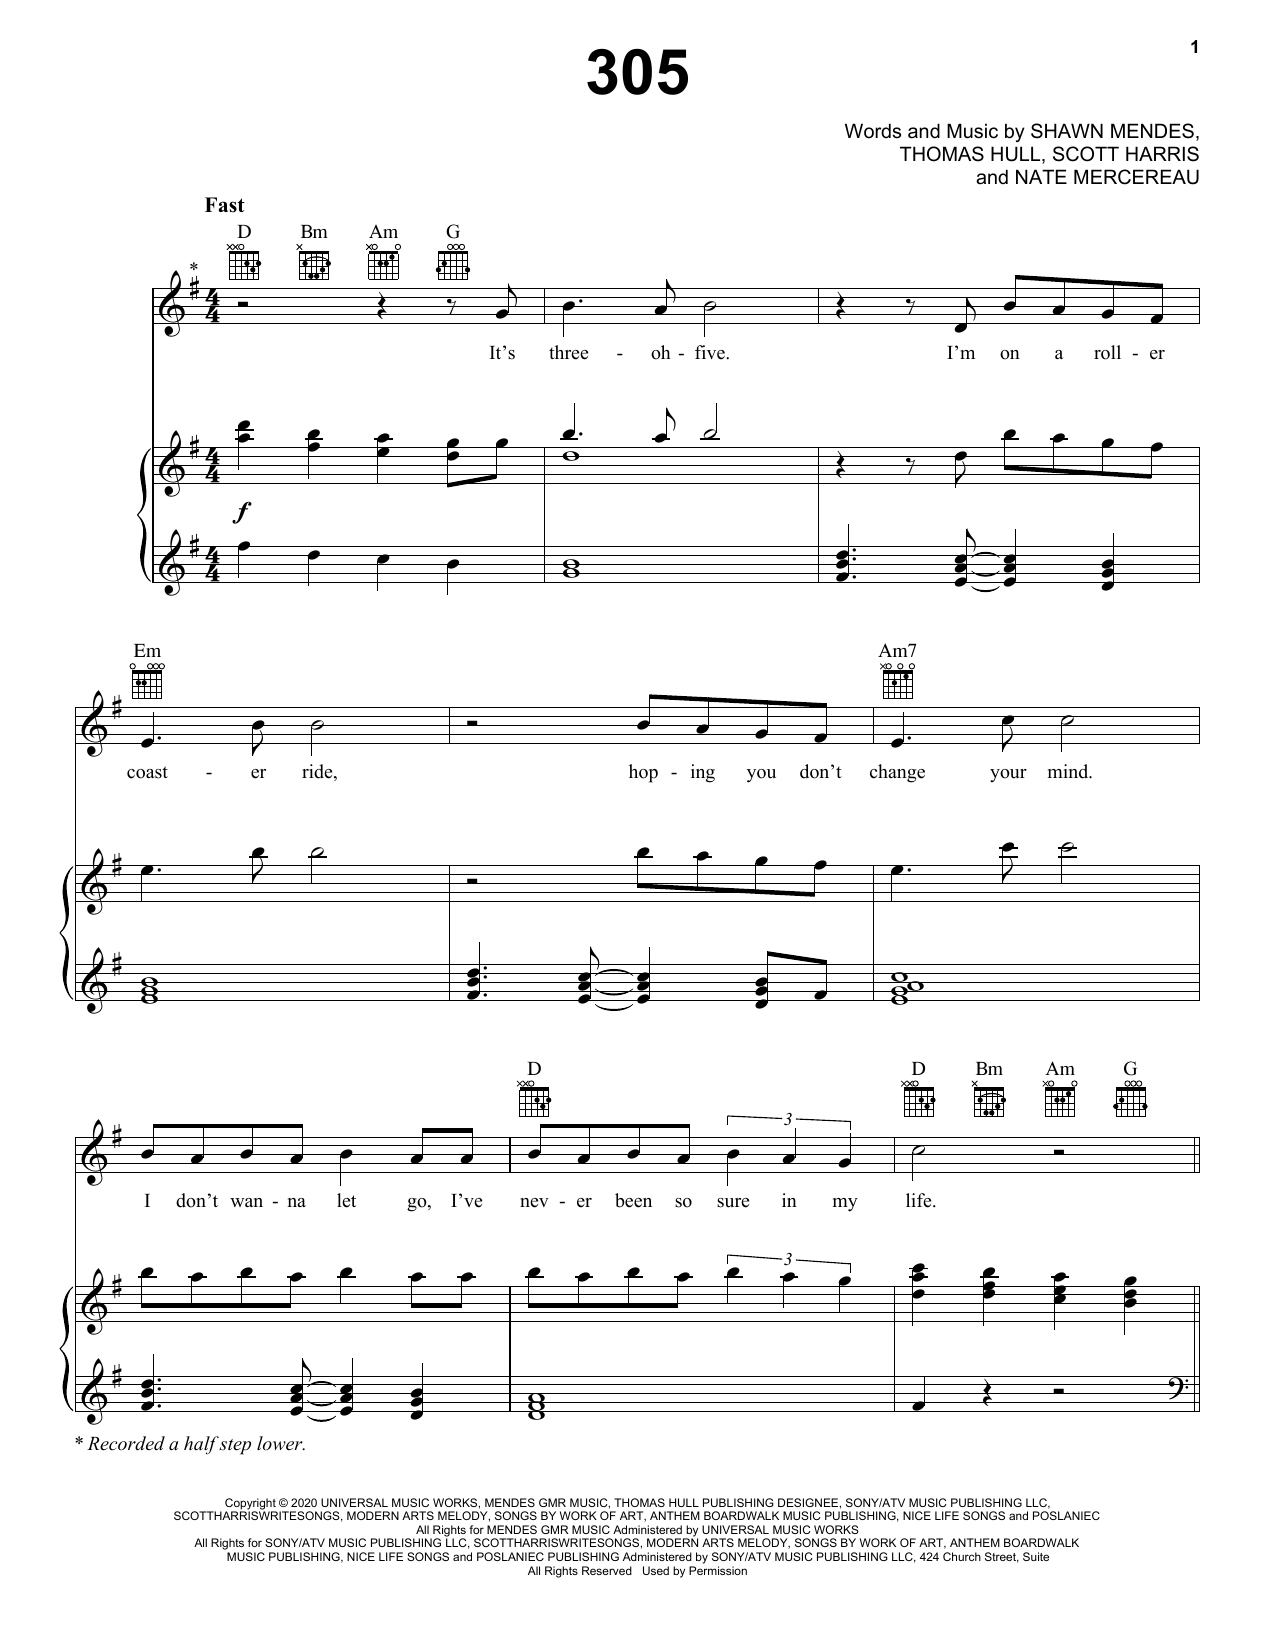 Shawn Mendes 305 sheet music notes printable PDF score